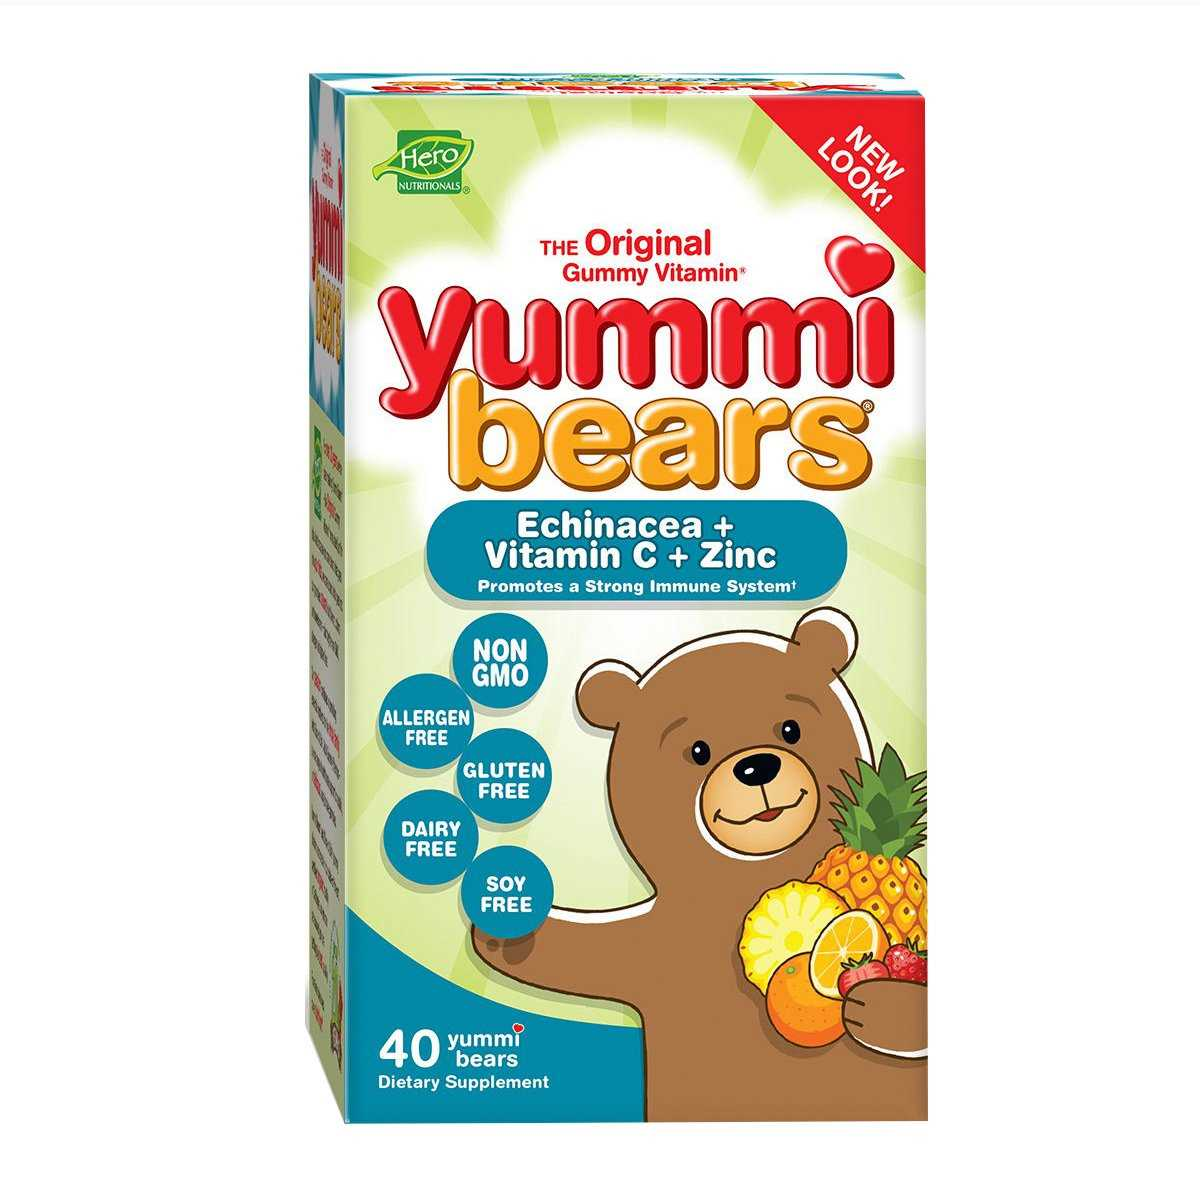 Hero Nutritionals Yummi Bears Echinacea w/ Vitamin C & Zinc